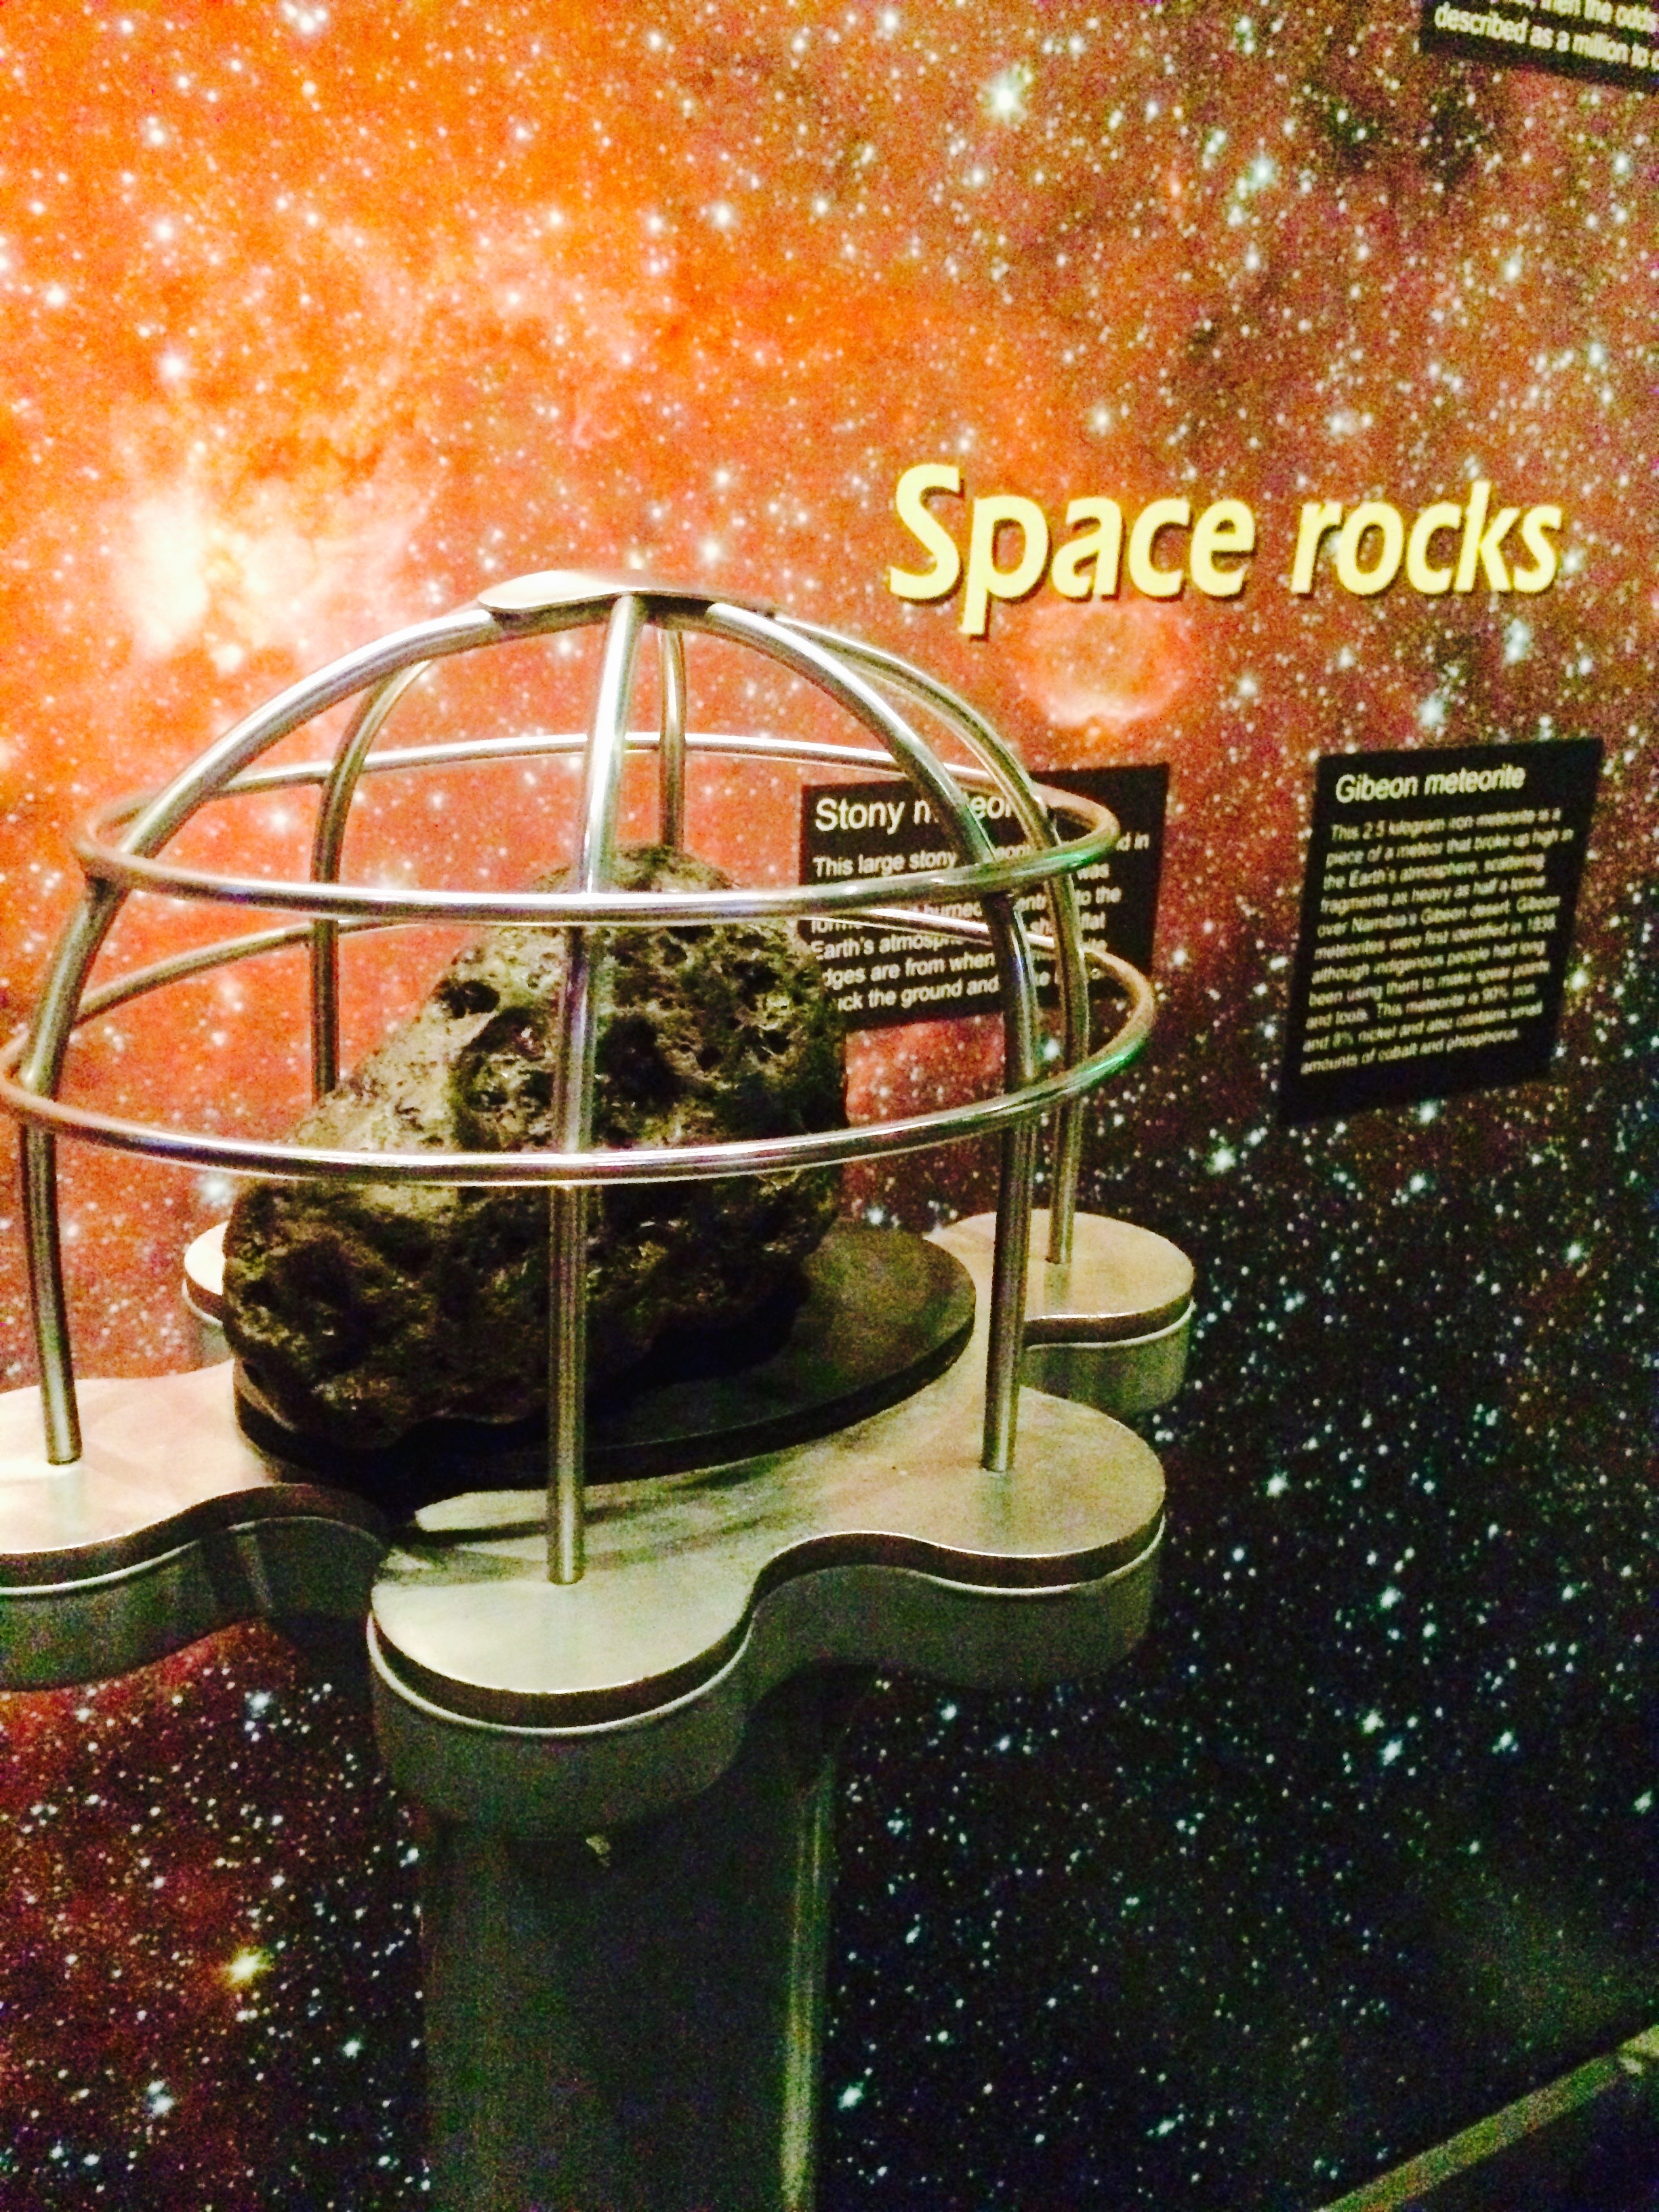 Real space rocks!